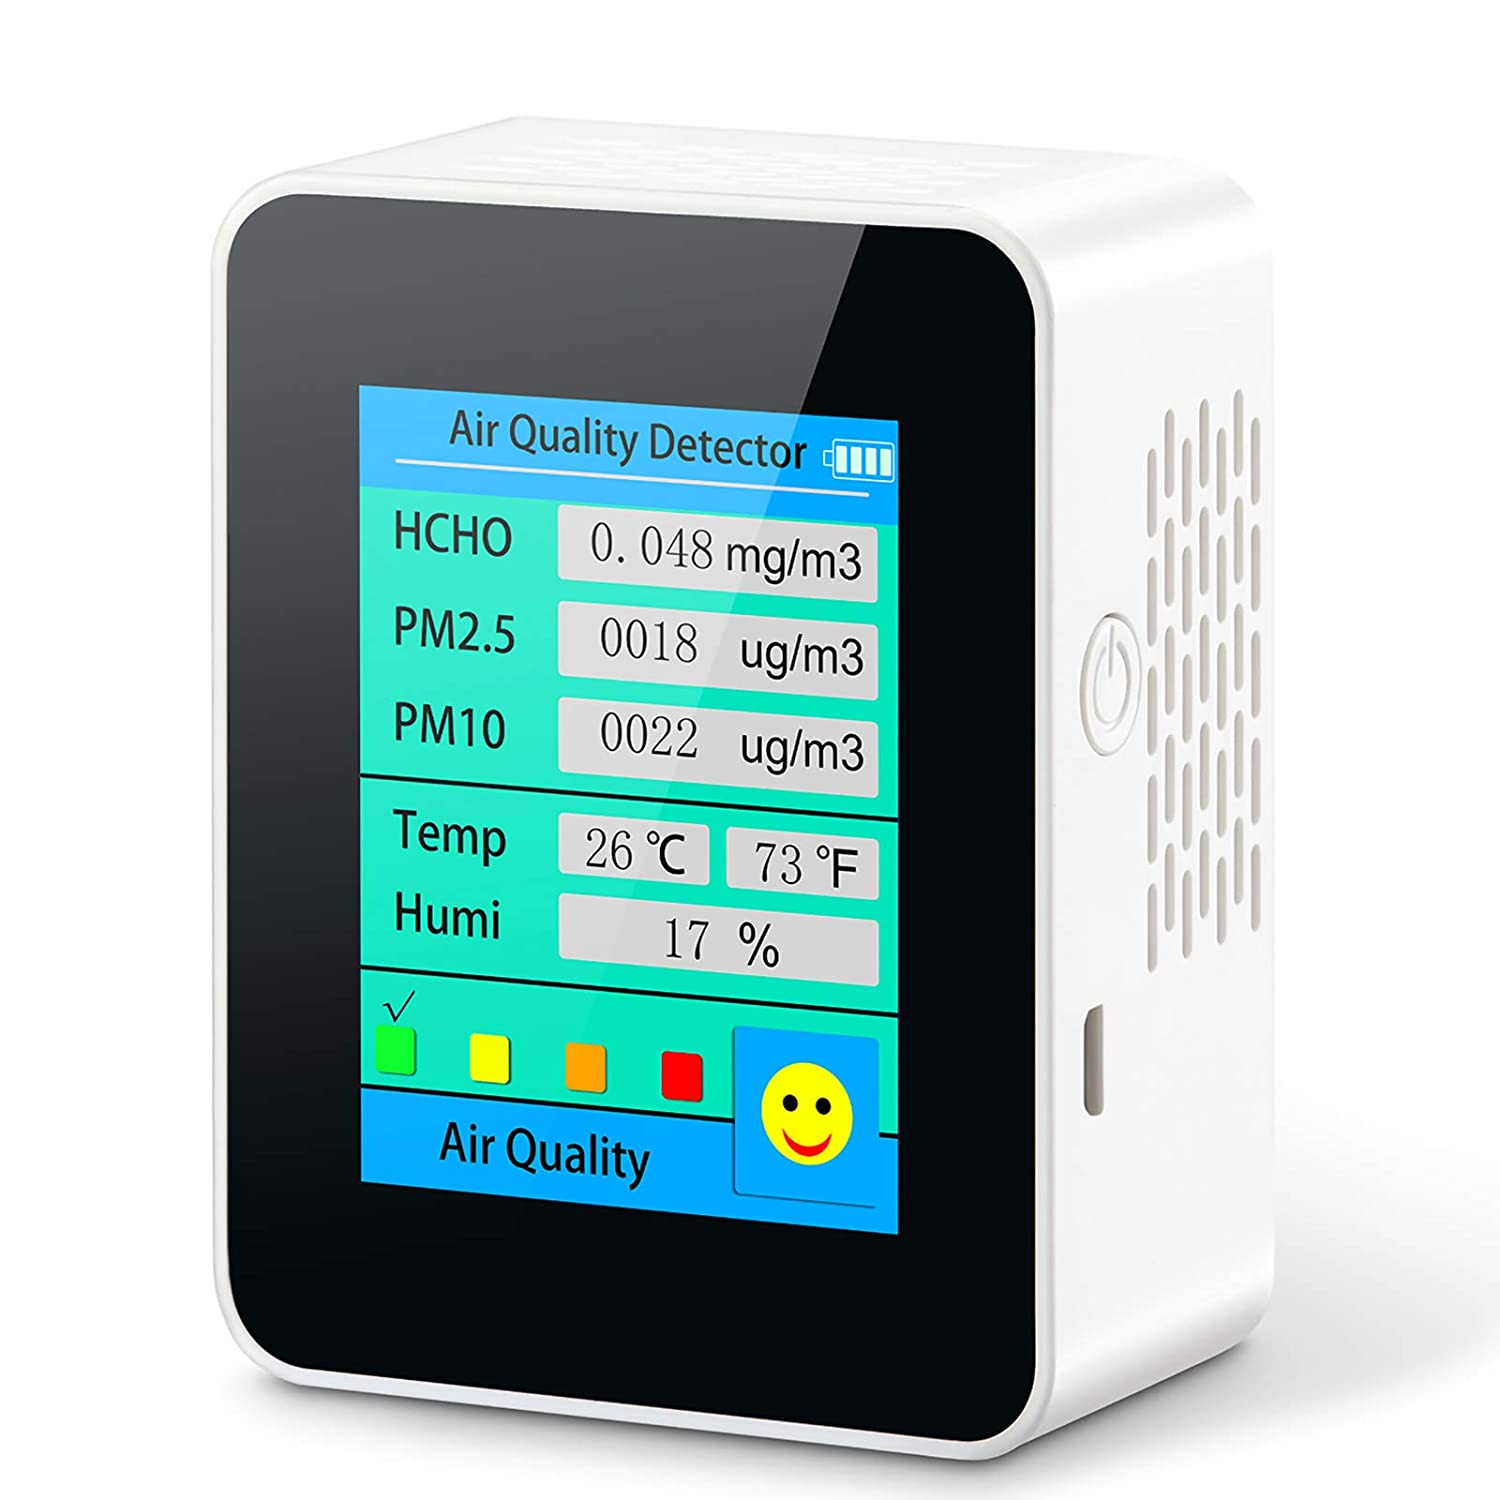 Air Quality Monitor Indoor for PM2.5/PM10 Formaldehyde Temperature and Humidity Professional Detector Real Time Display Air Quality Emoticons,Air Quality Tester for Home Offices and Various Occasions